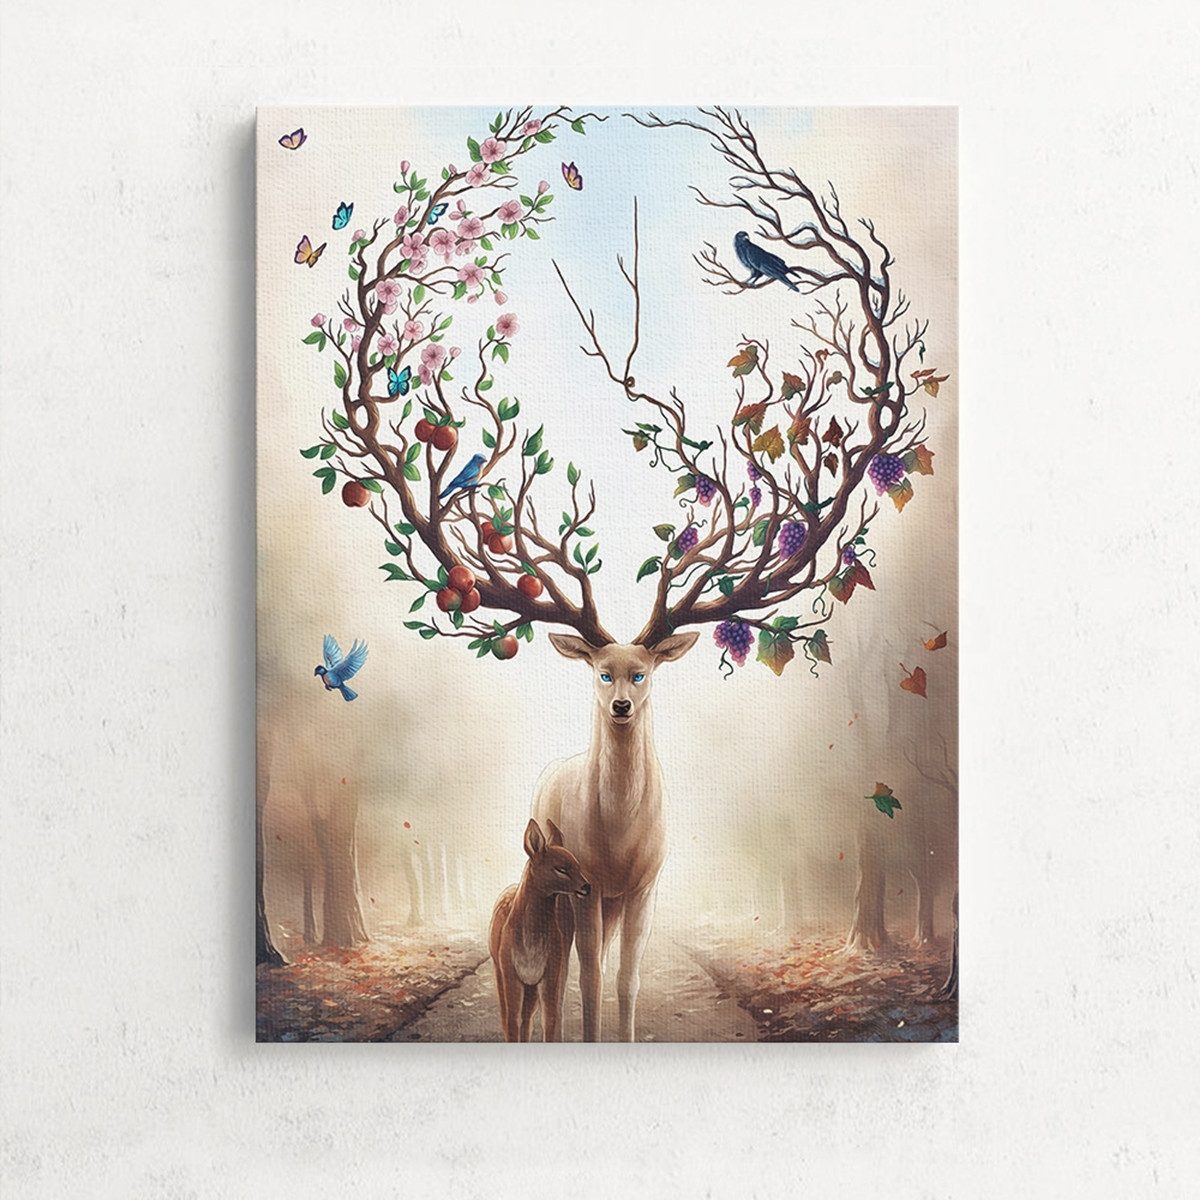 Home Decor Wall Art Intended For Current Unframed Canvas Print Deer Design Modern Home Decor Wall Art (View 11 of 15)